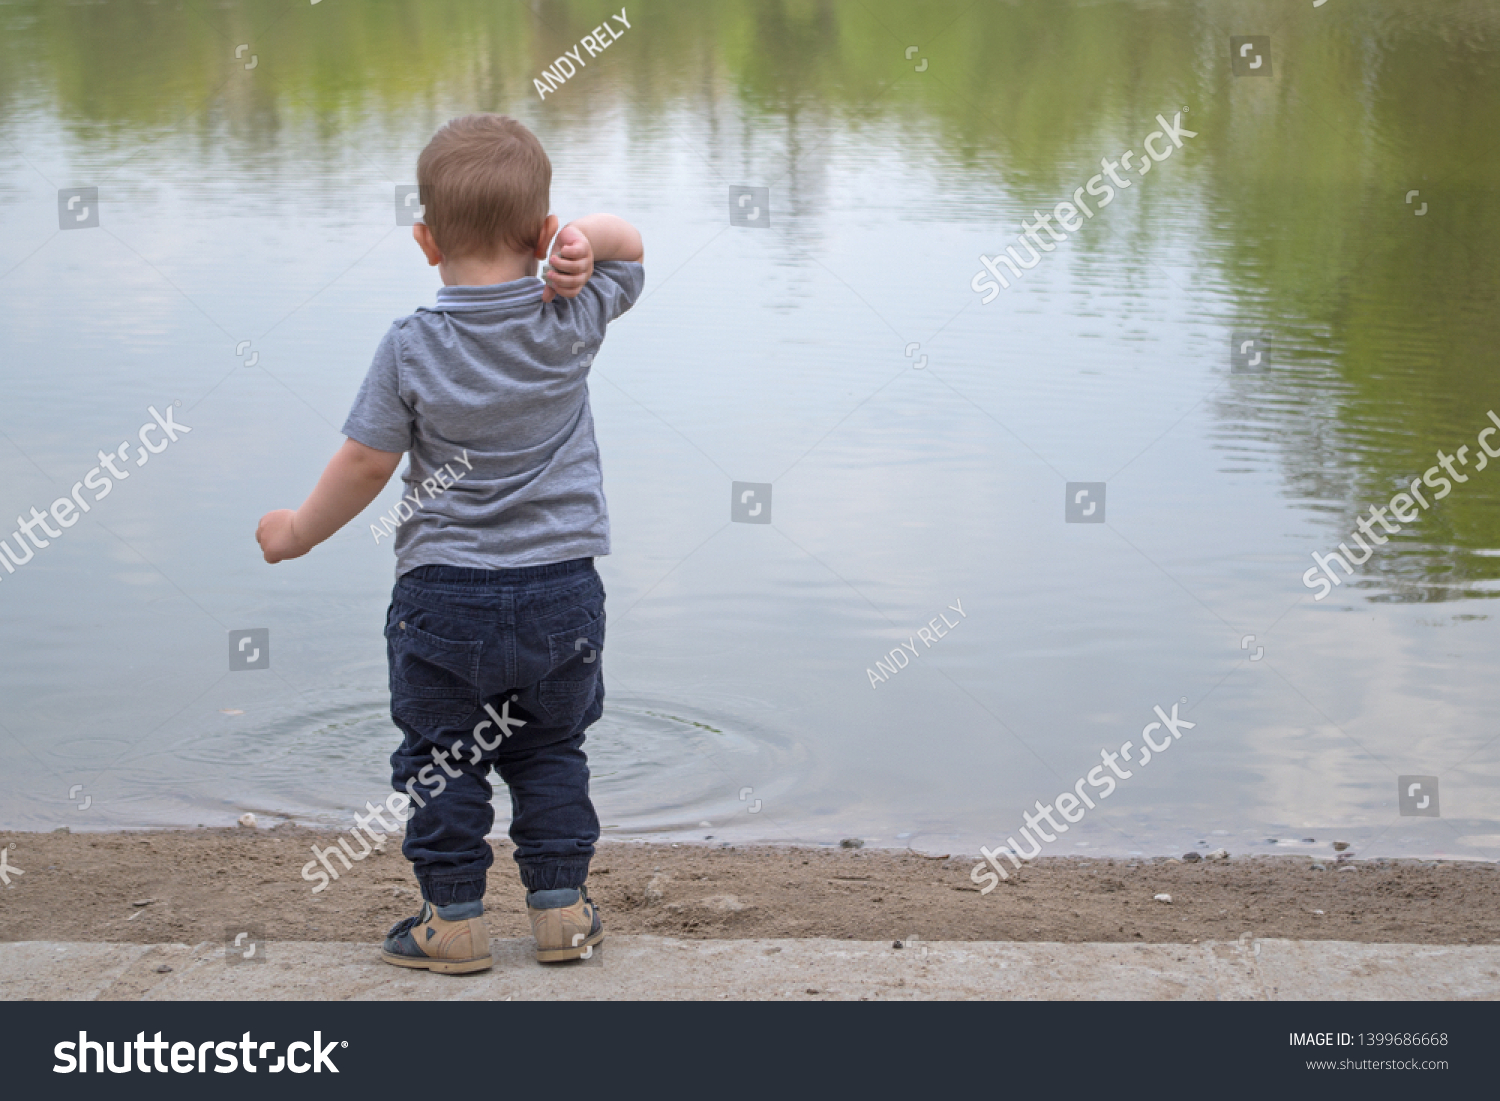 stock-photo-a-little-boy-in-a-gray-t-shi